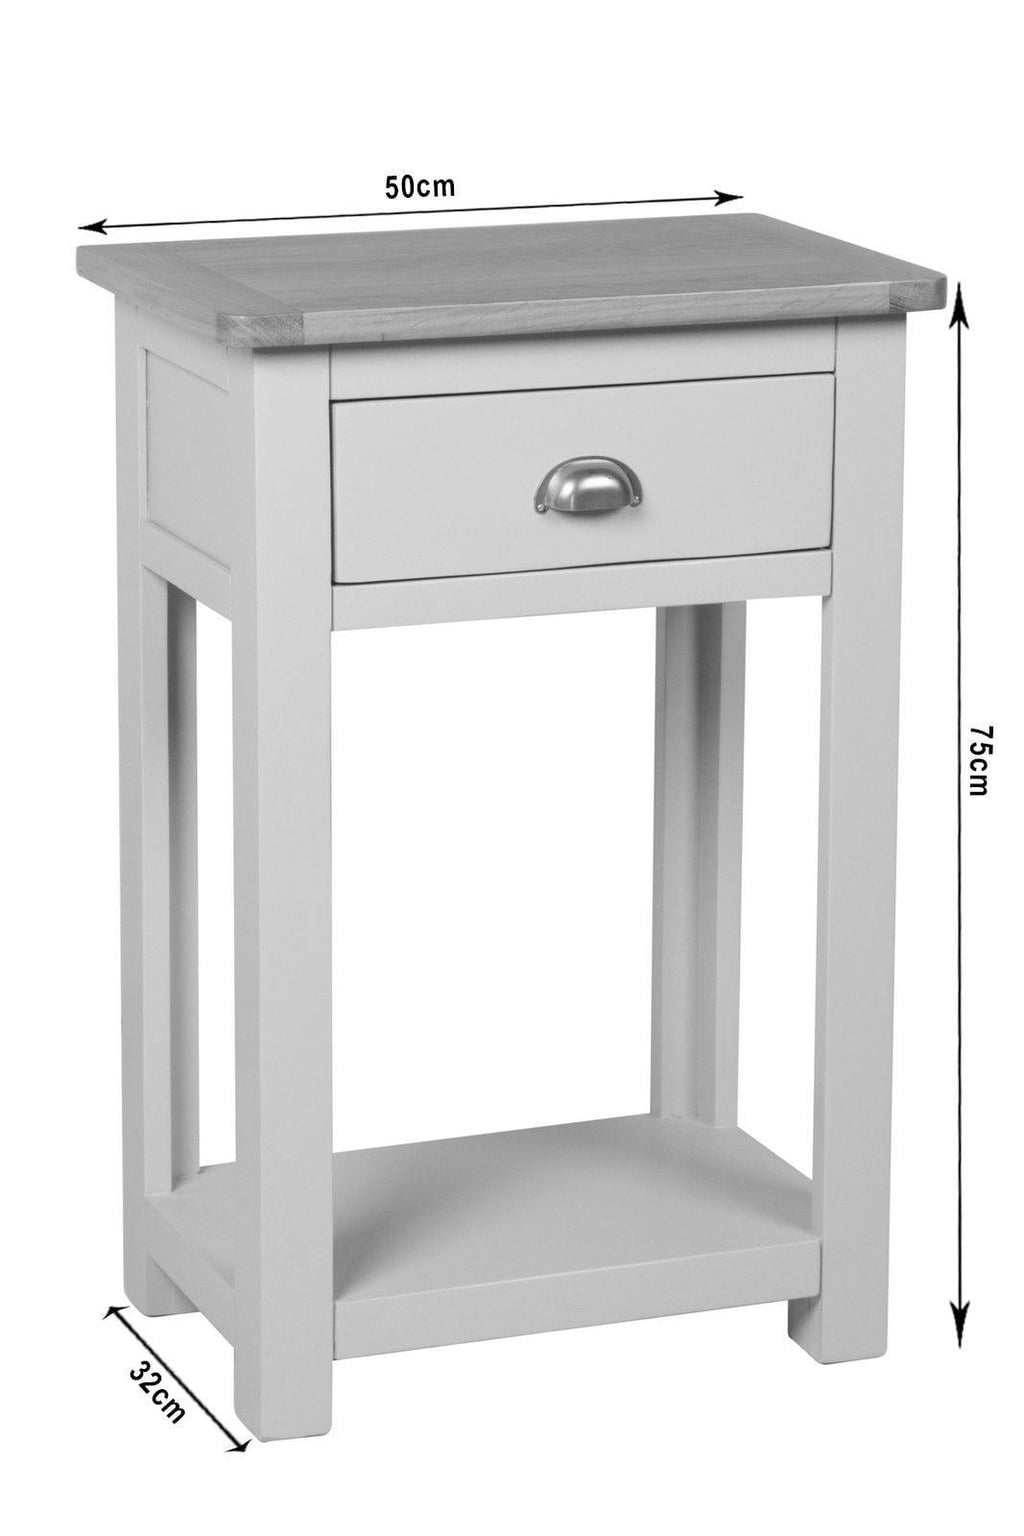 Farrows Grey Painted Small Console Table - Oak Village